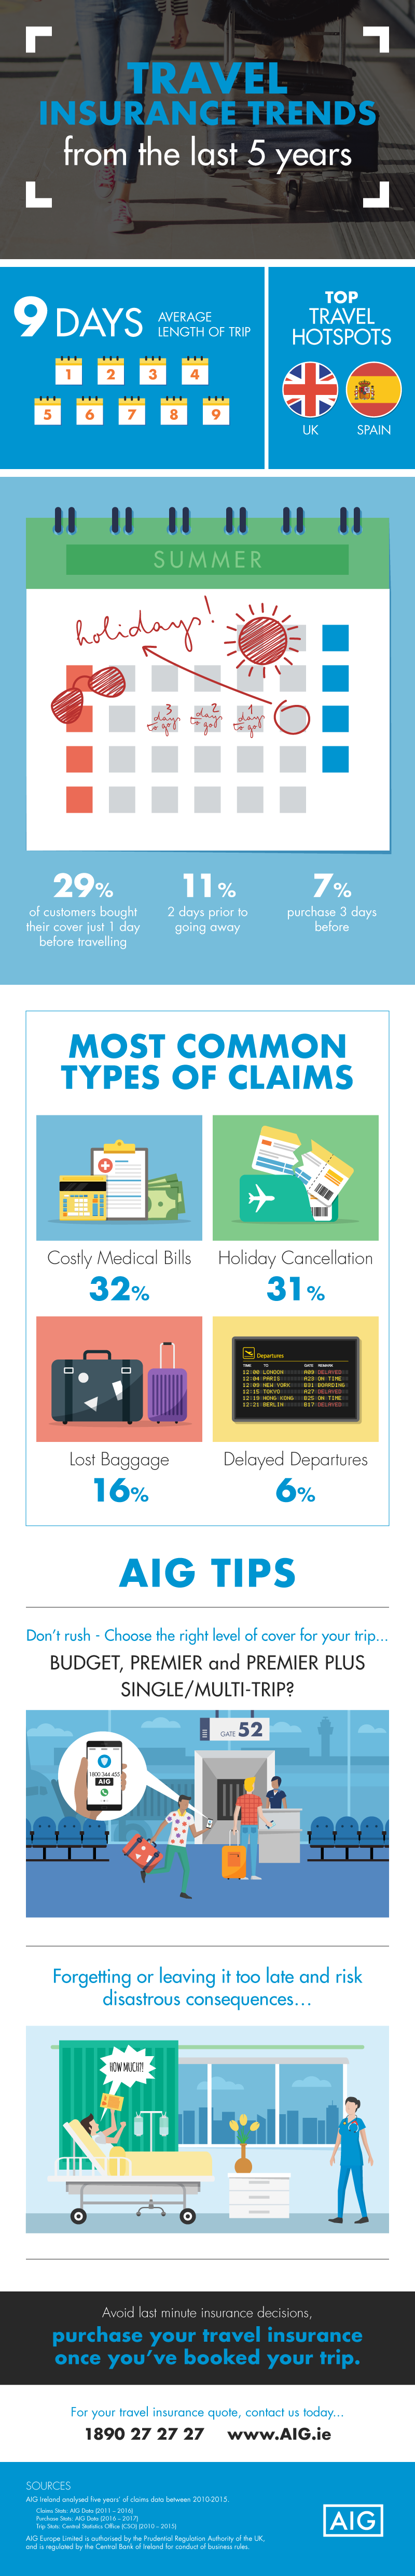 Aig-travel-trends (1) (1)